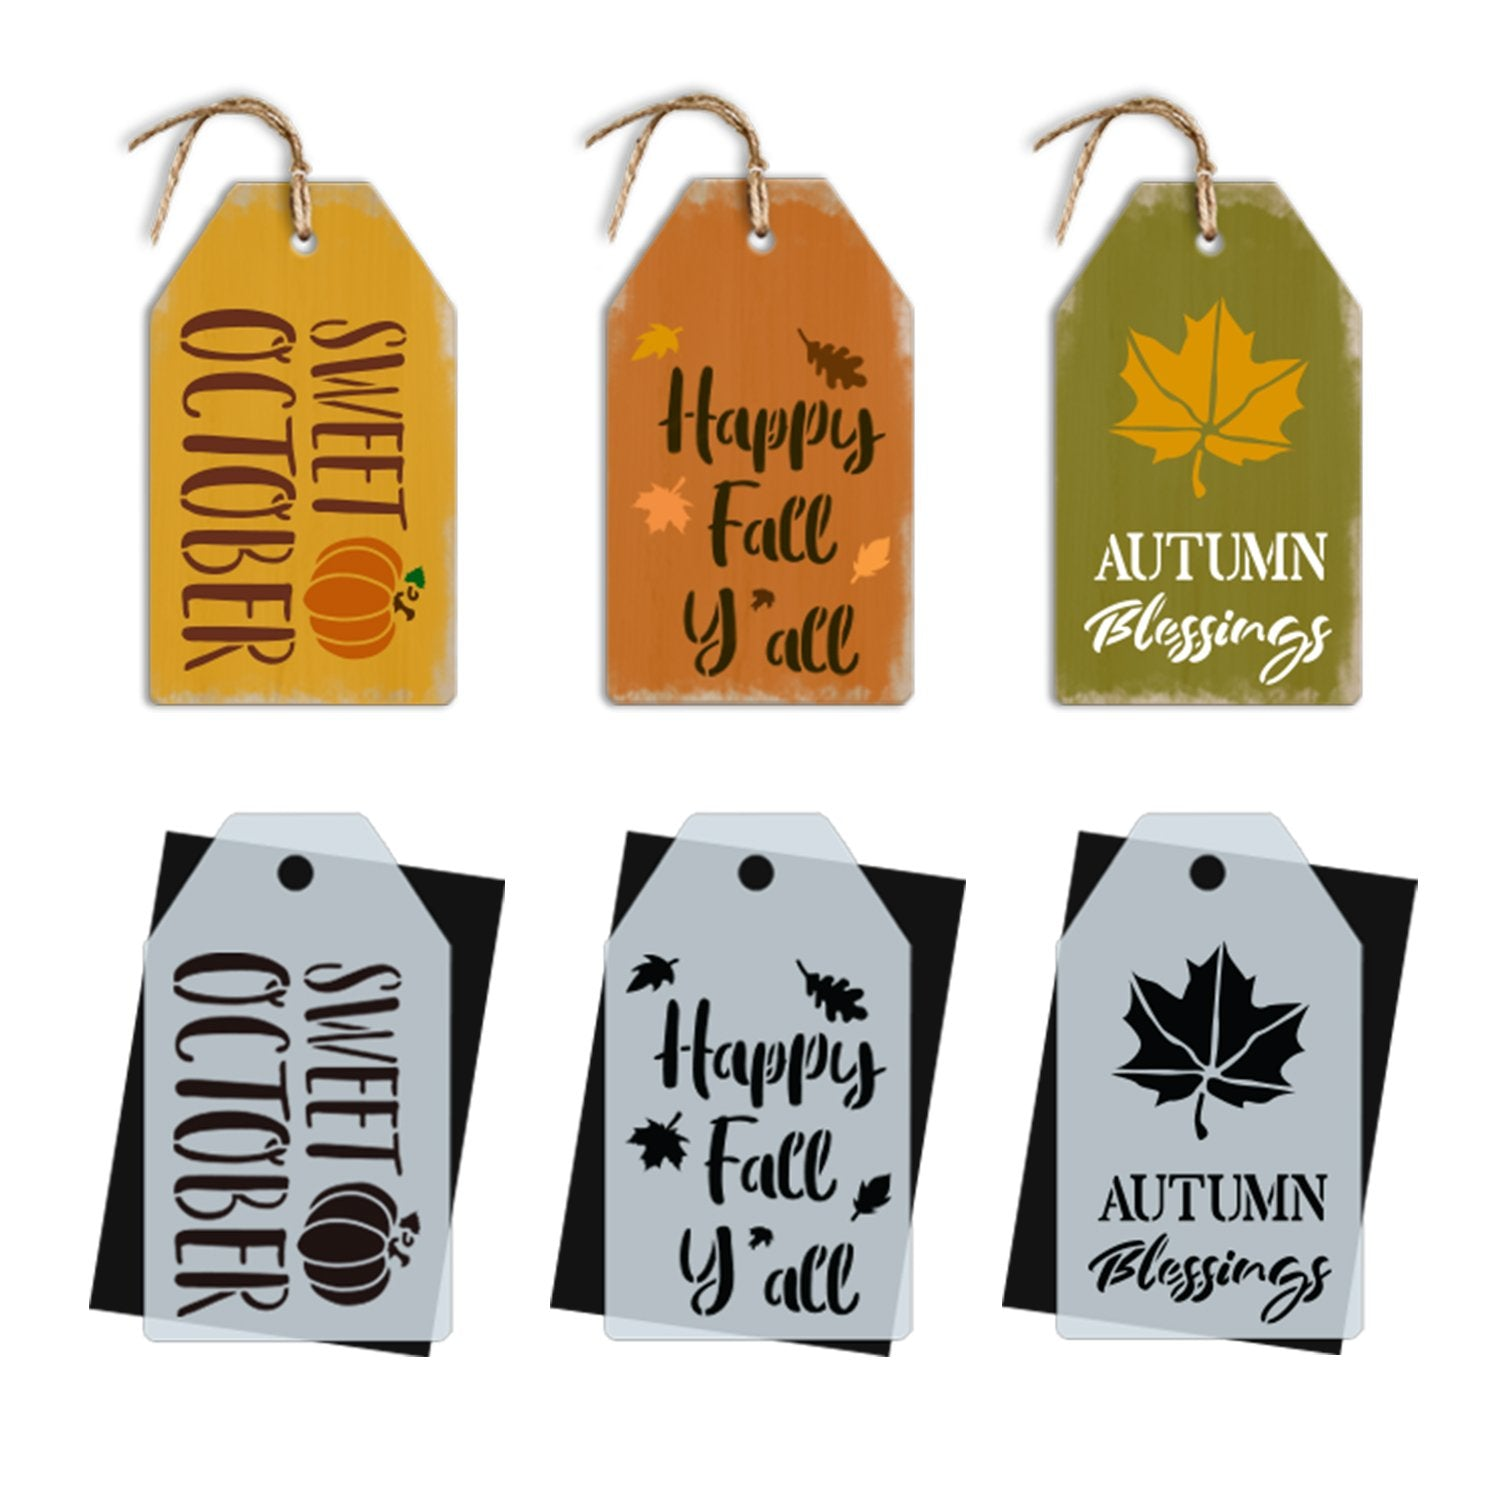 DIY reusable fall mini tag stencils, sweet October mini tag stencil sign, Happy Fall Y'all mini tag stencil sign, Autumn blessings mini fall tag stencil sign, diy fall teired tray decor, diy autumn decor tags